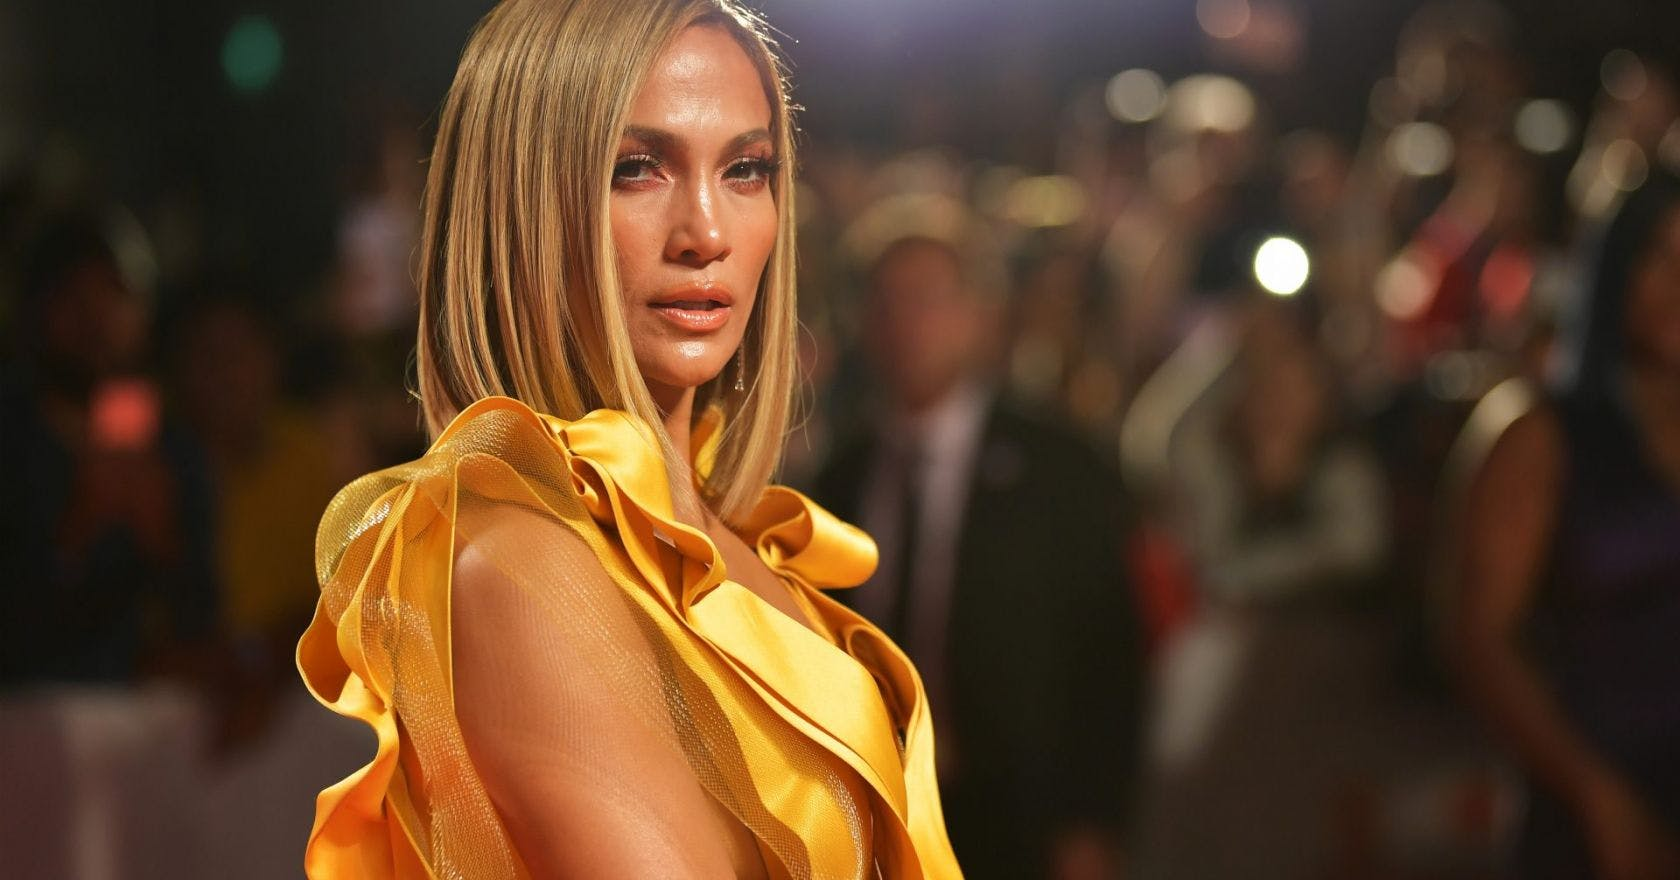 Jennifer Lopez has bottled her glow. Here's everything you need to know